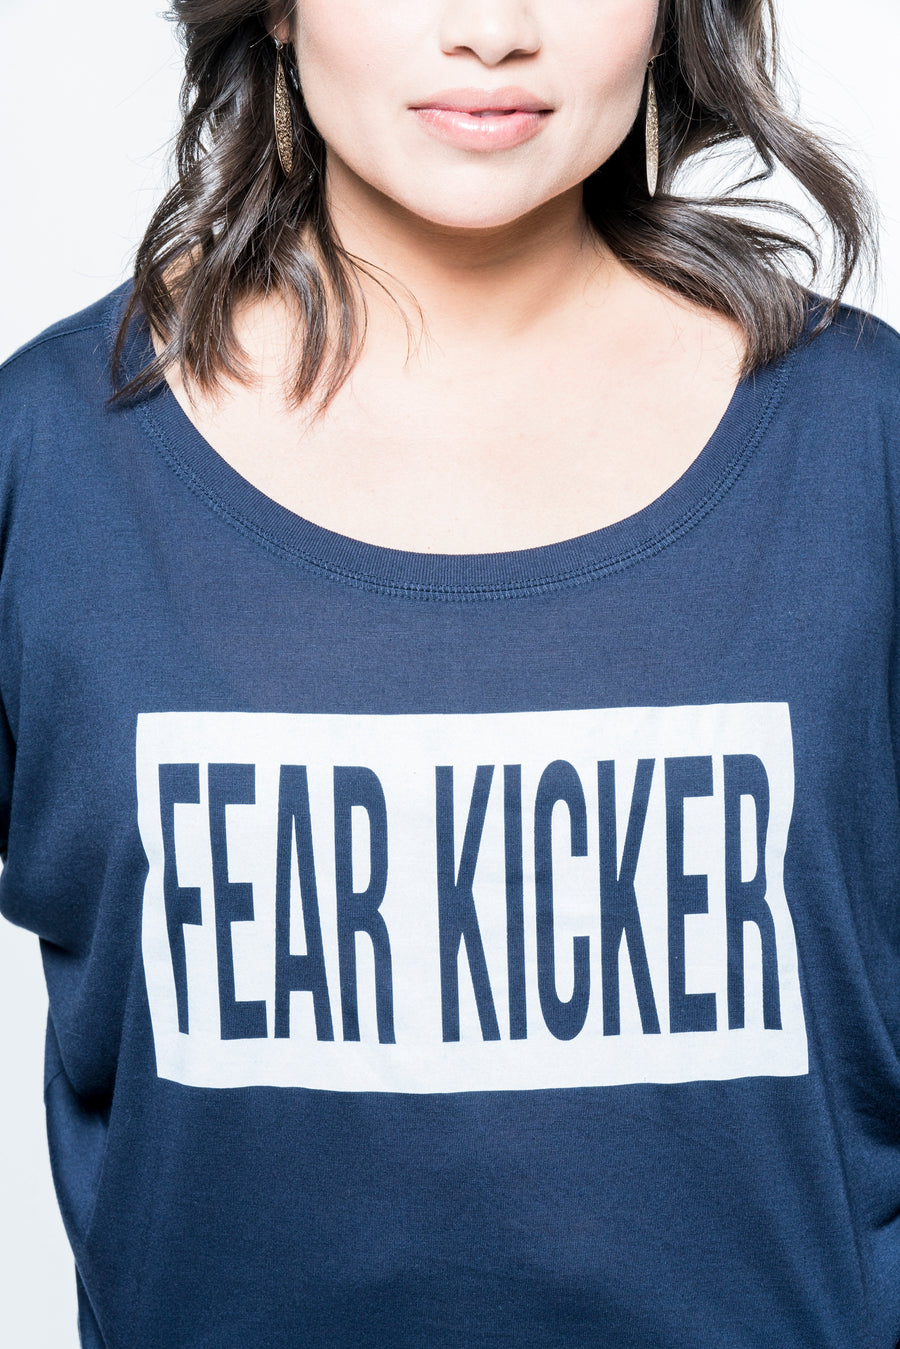 Fear Kicker Long Sleeve Top